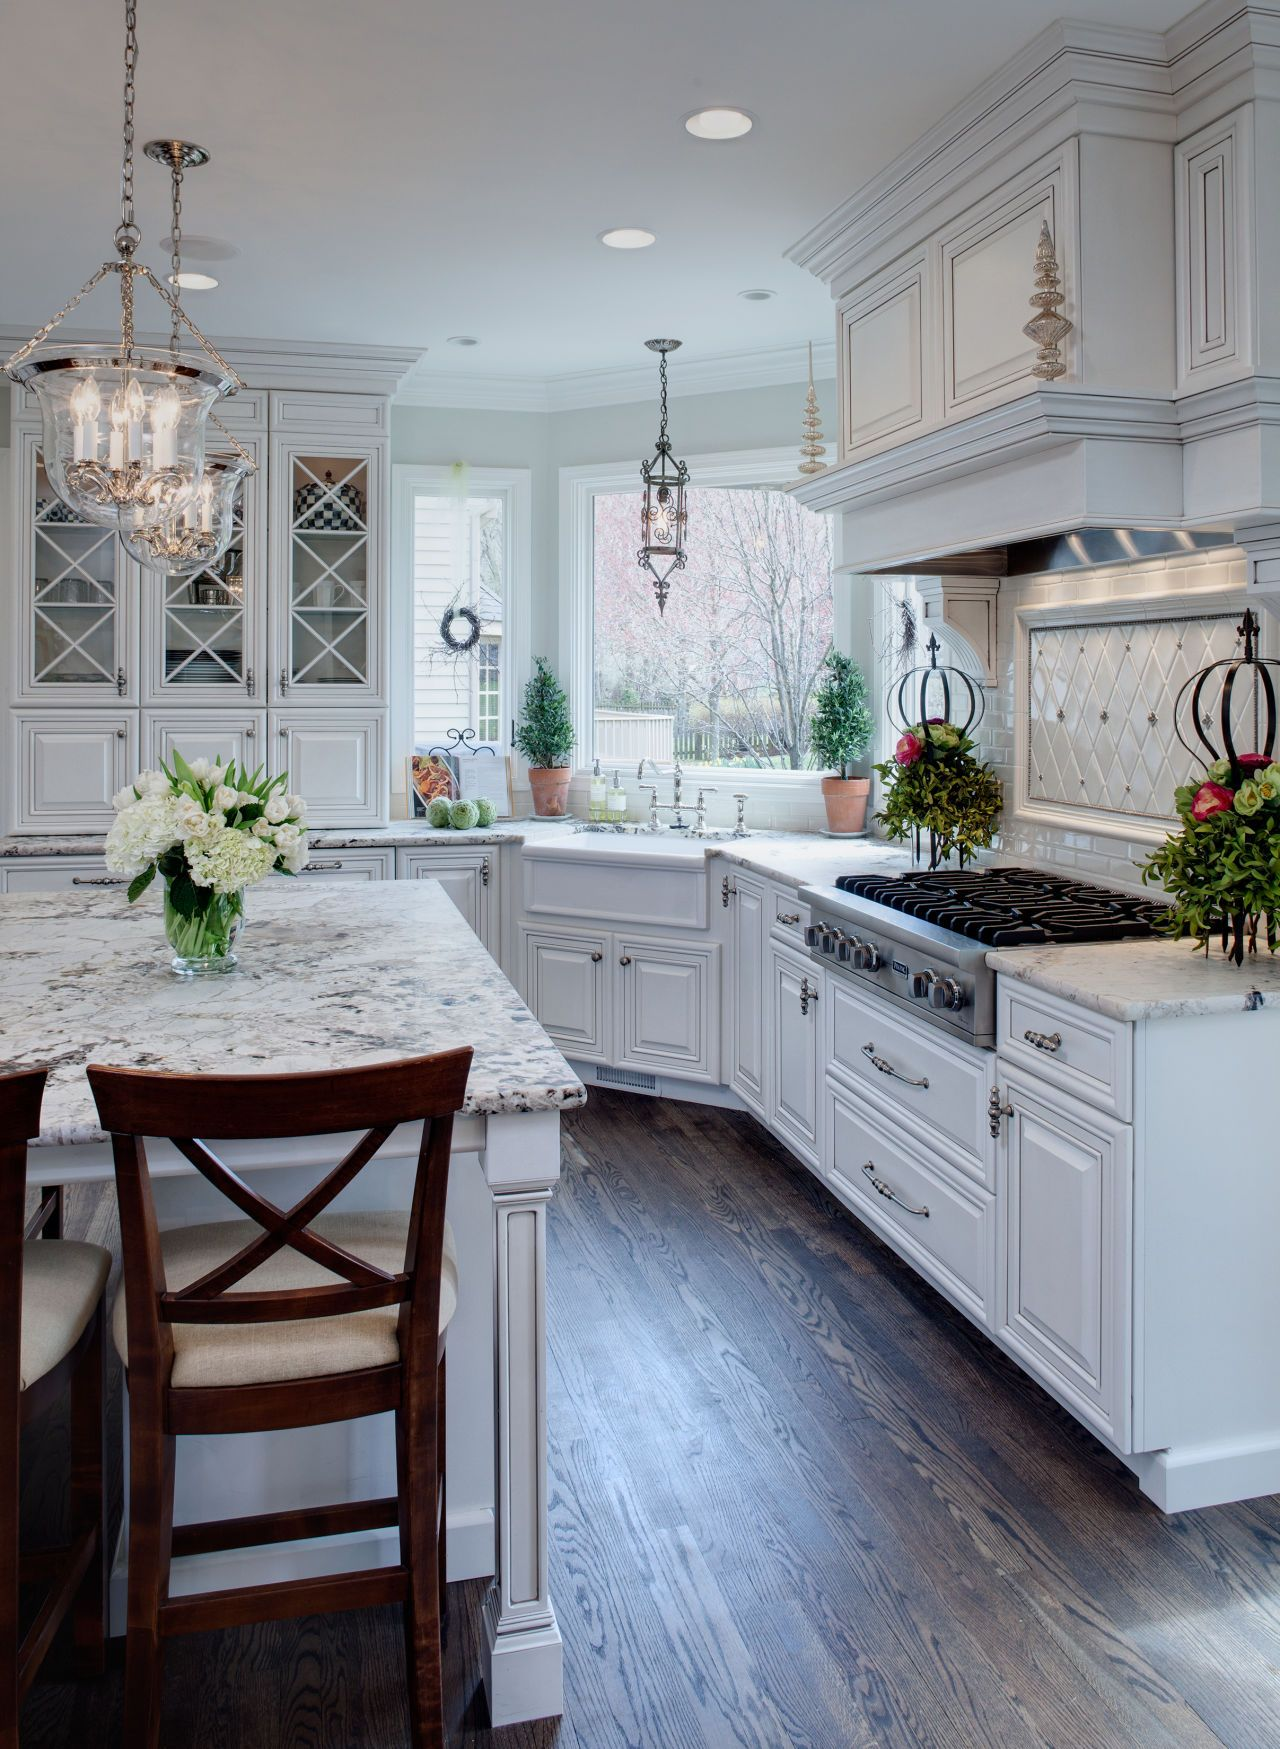 Kitchen Design Pinterest Getting The Ultimate Pinterest Dream Home Would Cost You Millions